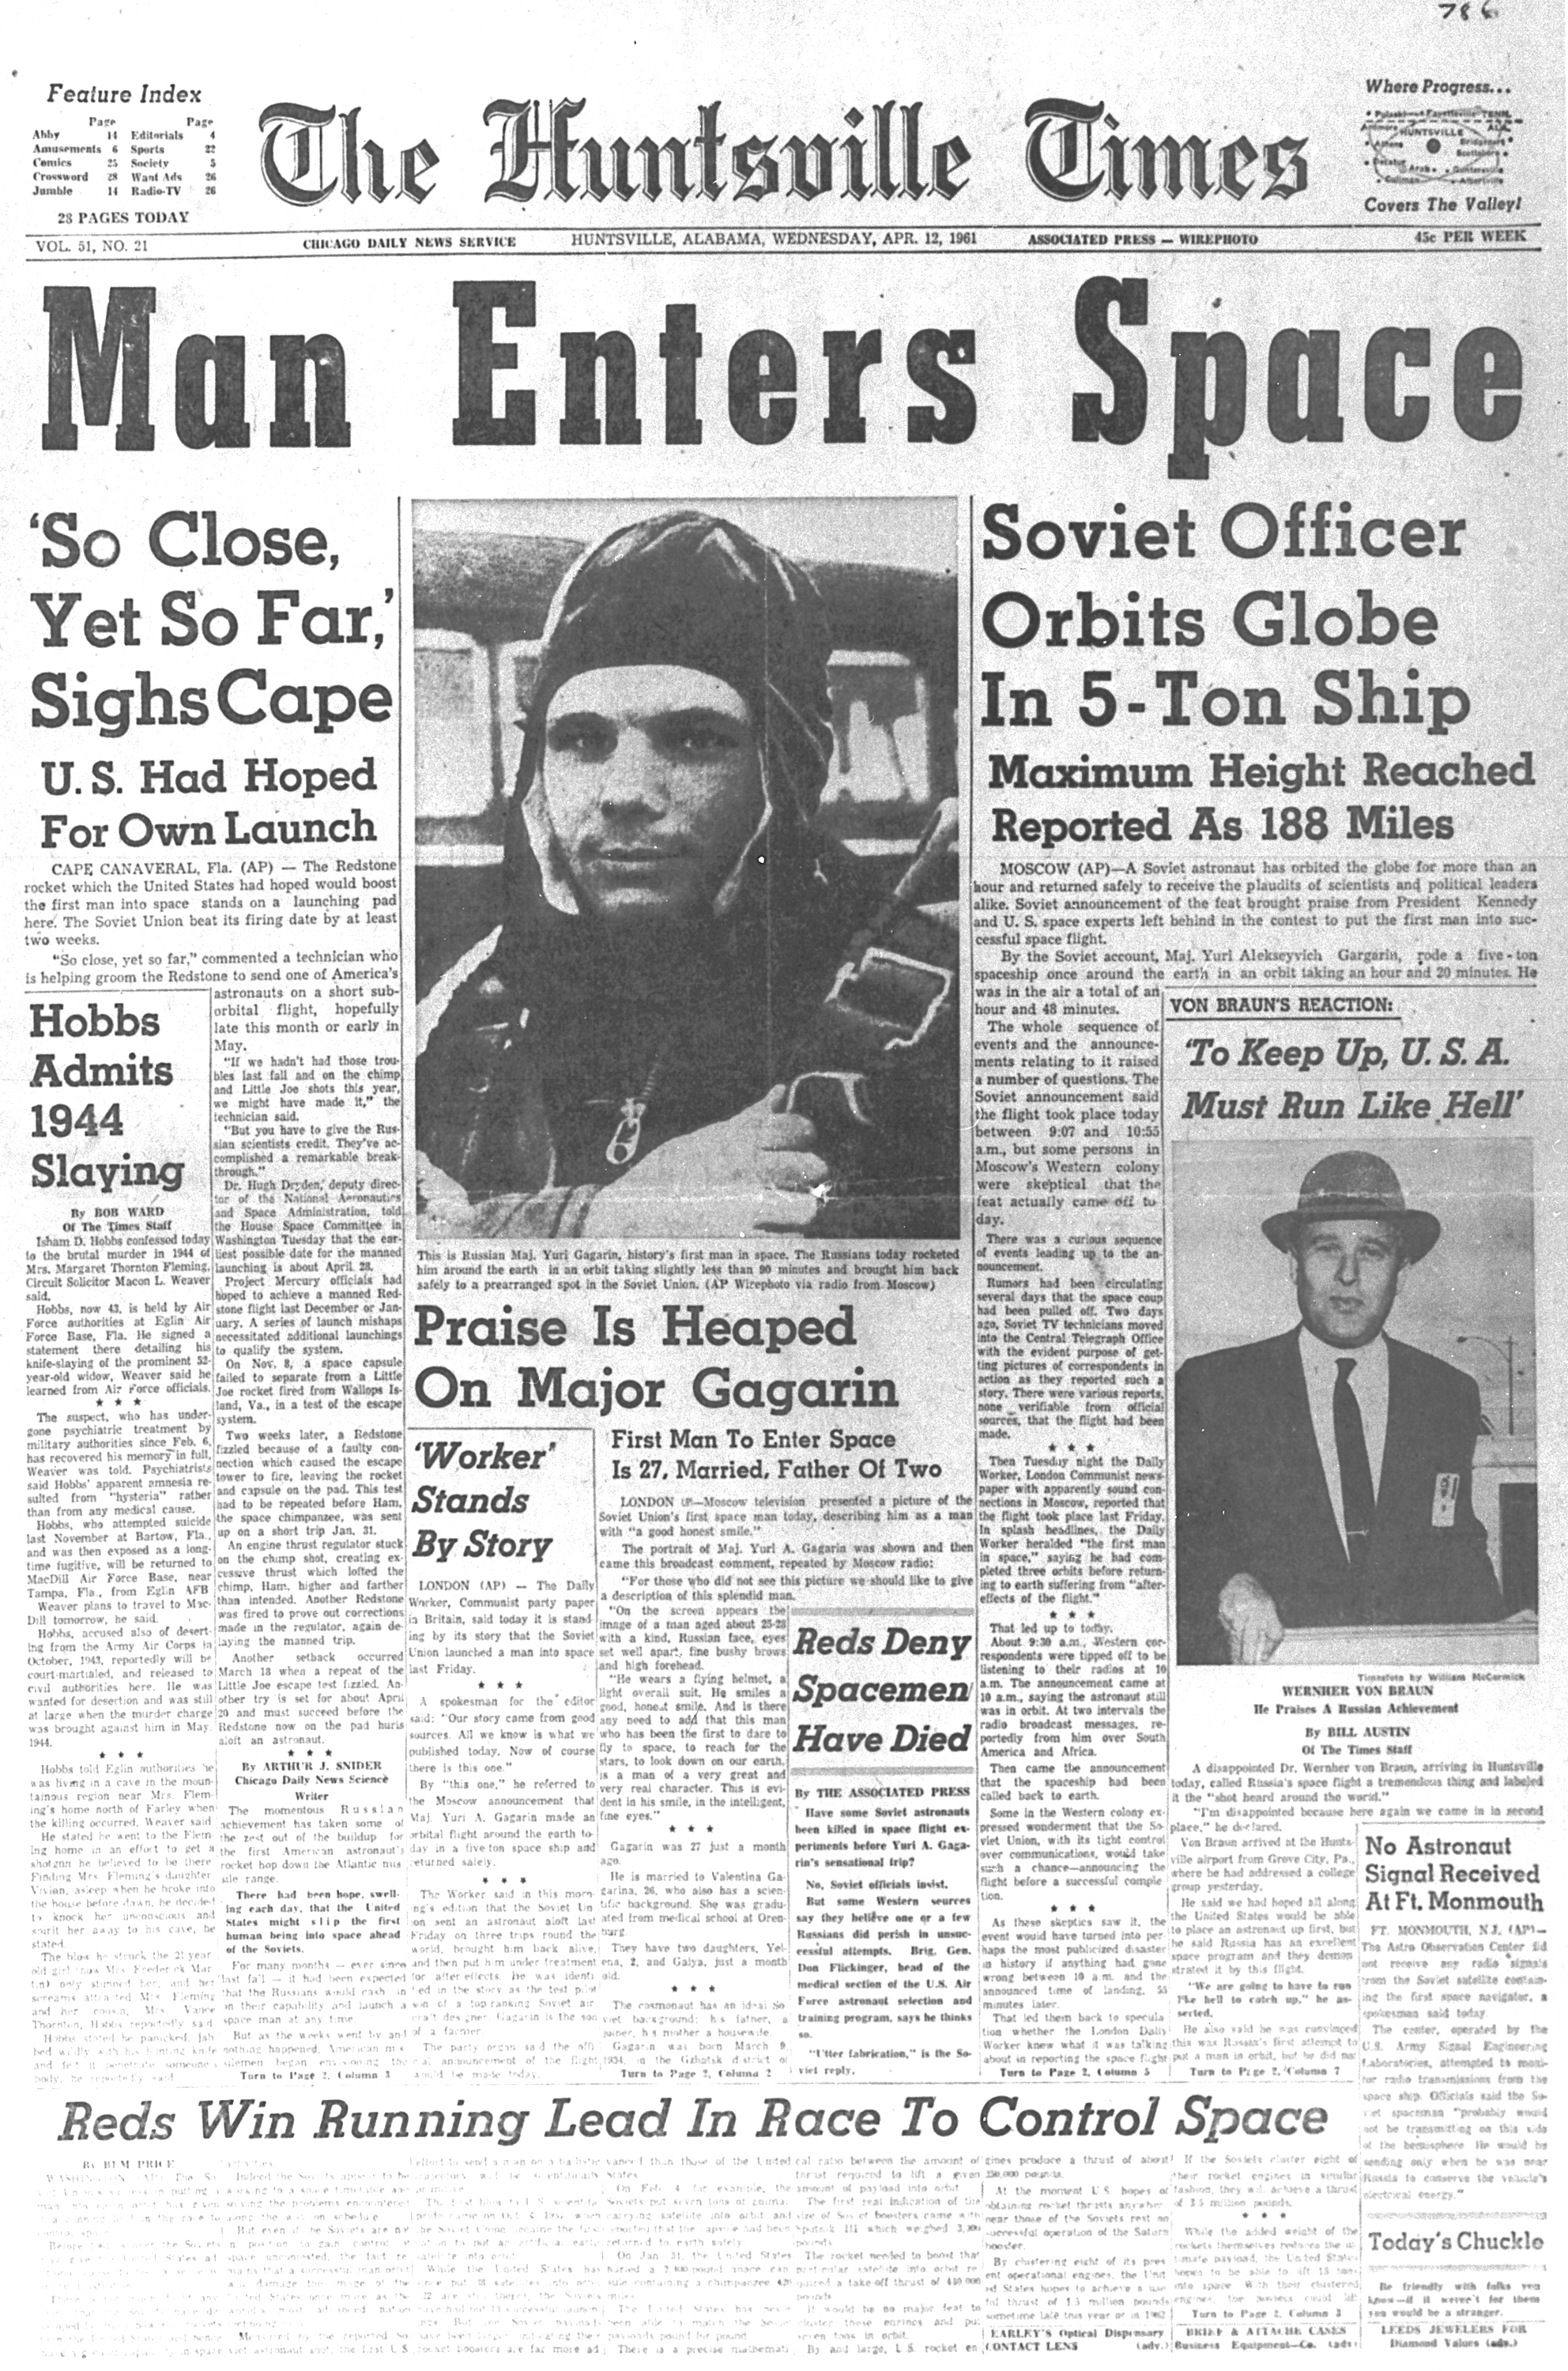 yuri gagarin newspaper -#main